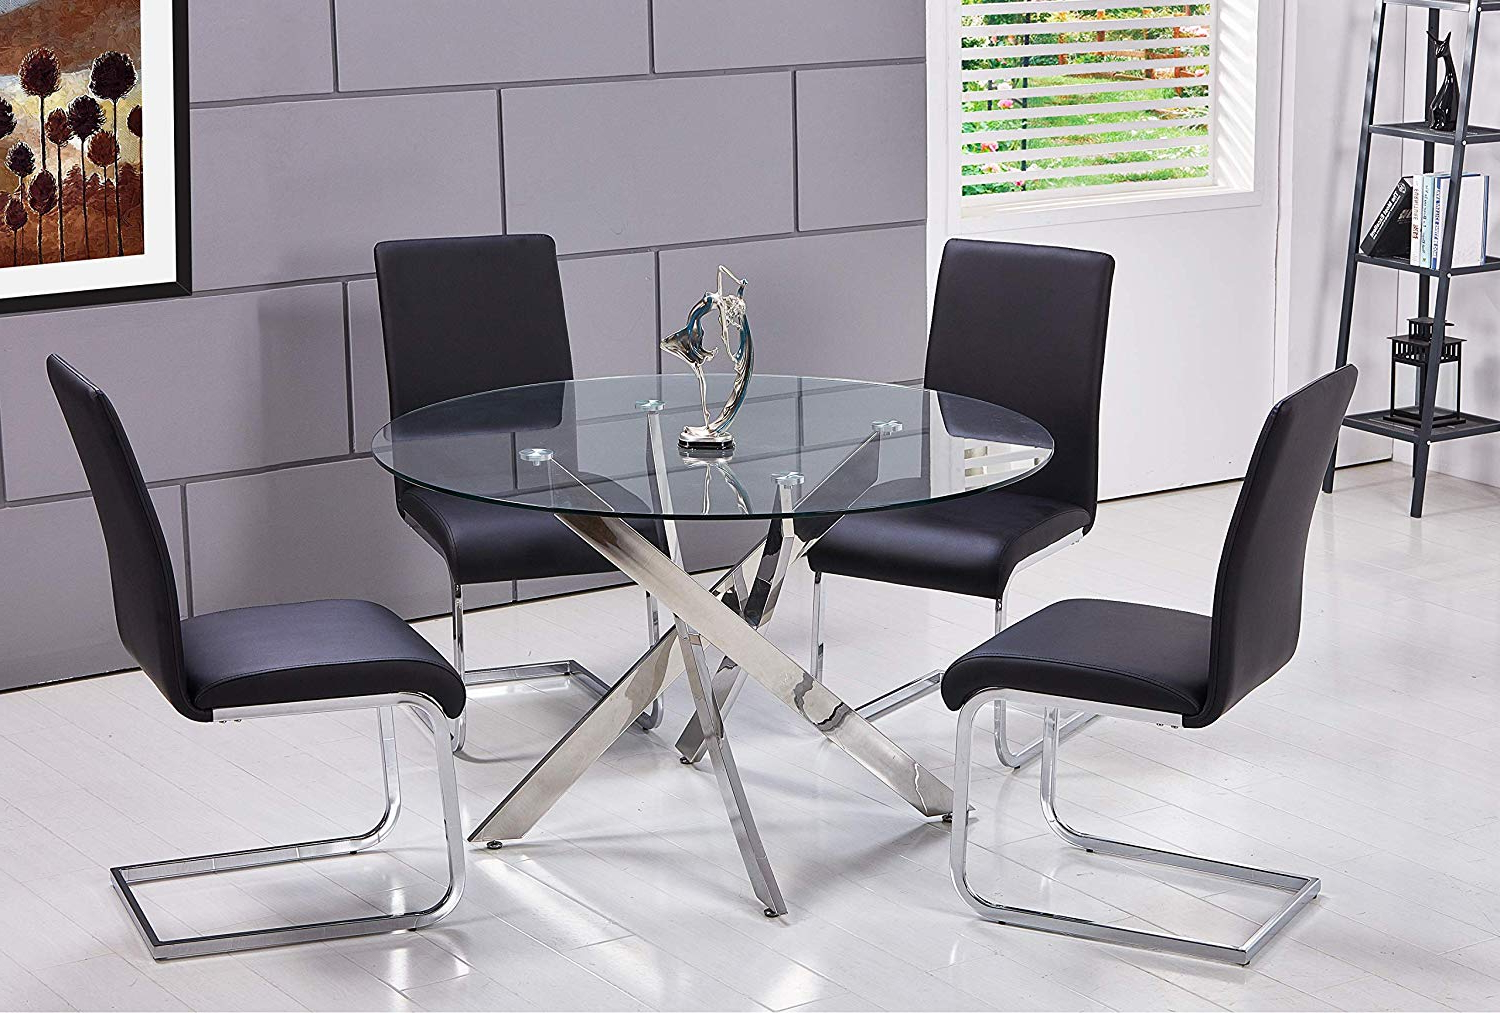 4 Seater Round Wooden Dining Tables With Chrome Legs regarding Well-known Amazon - Best Master Furniture T01 Mirage 5 Pcs Glass